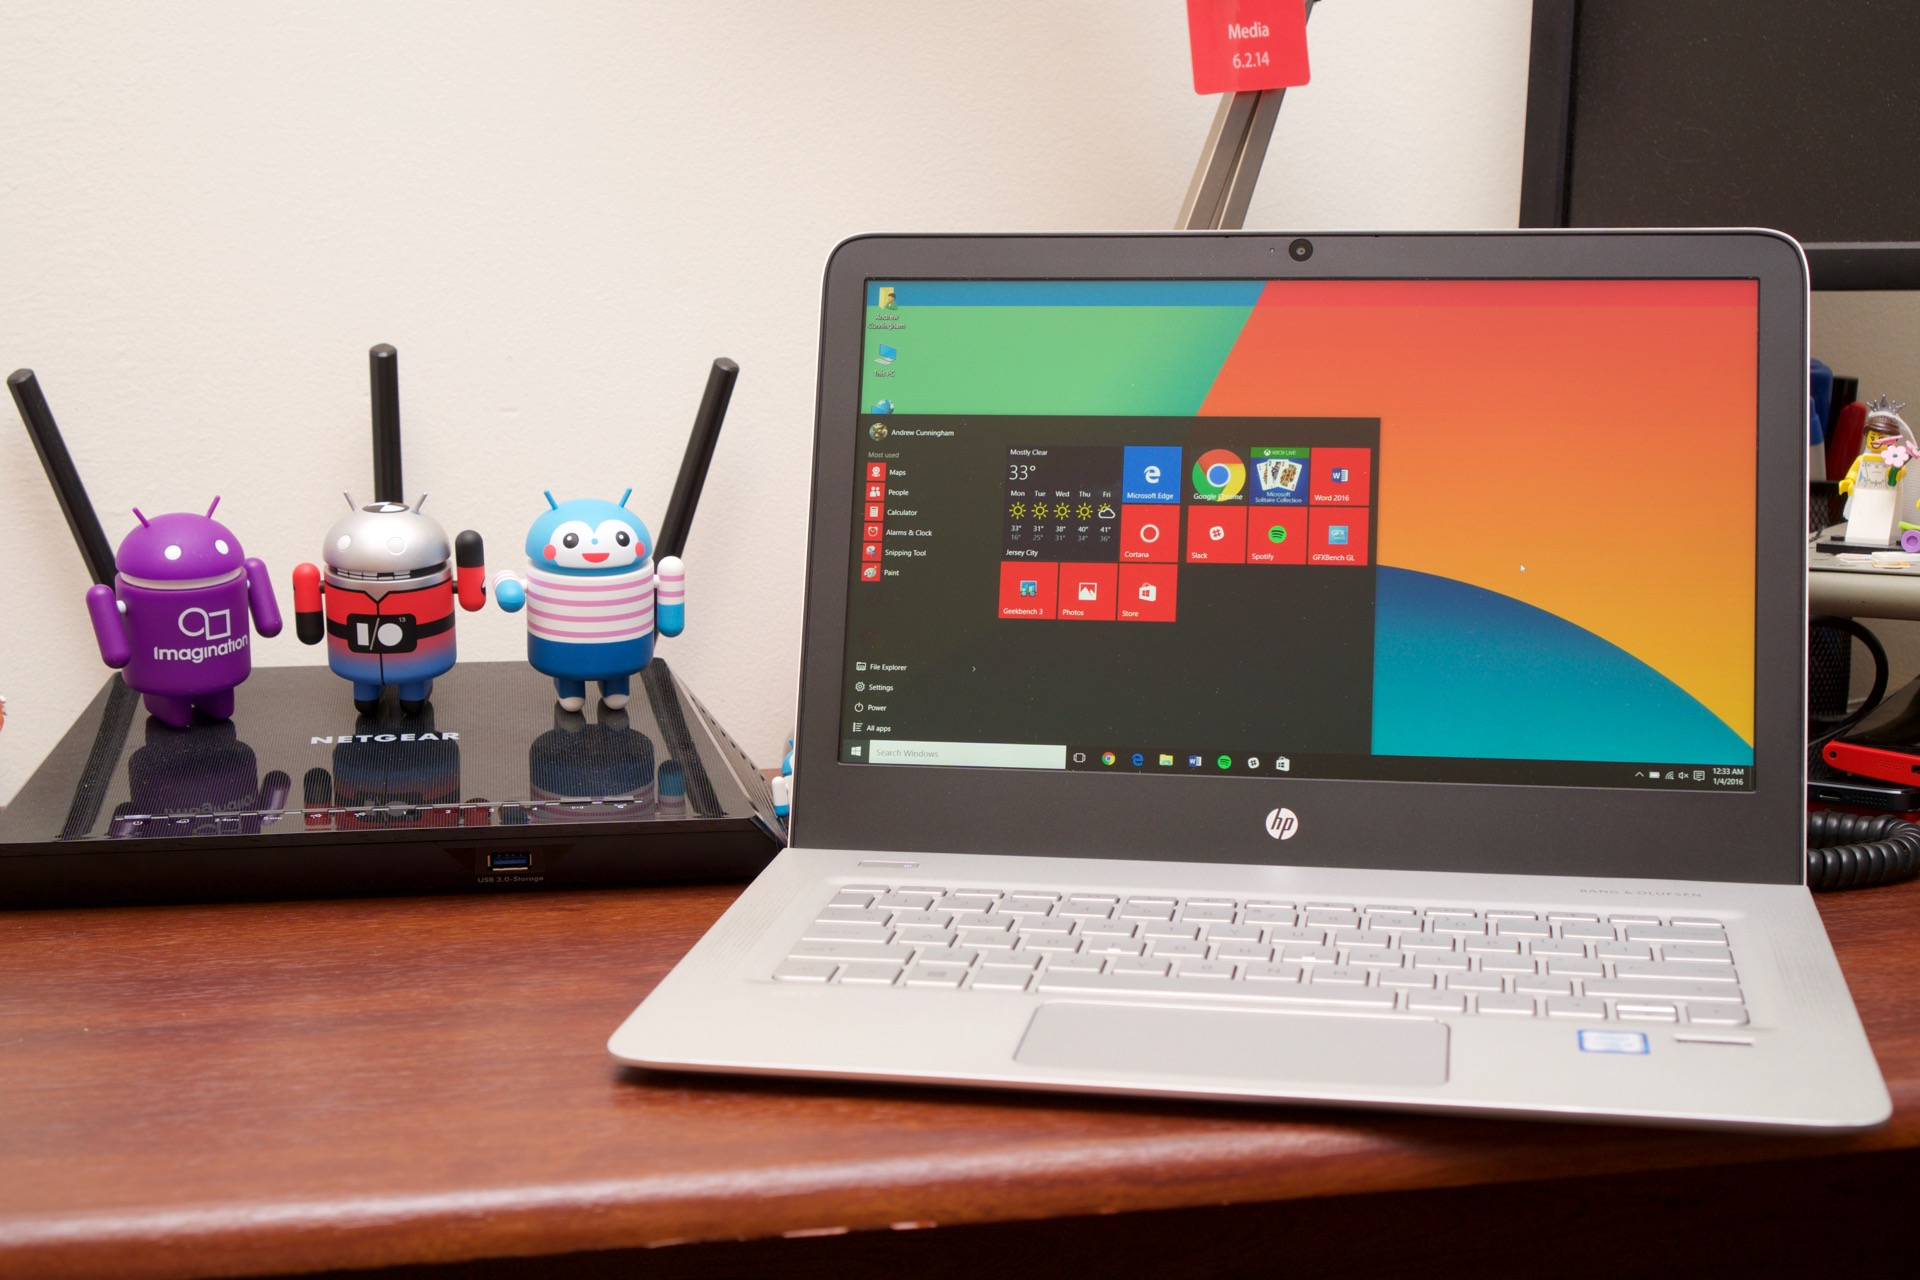 Review: Battery life and keyboard problems hinder HP Envy 13